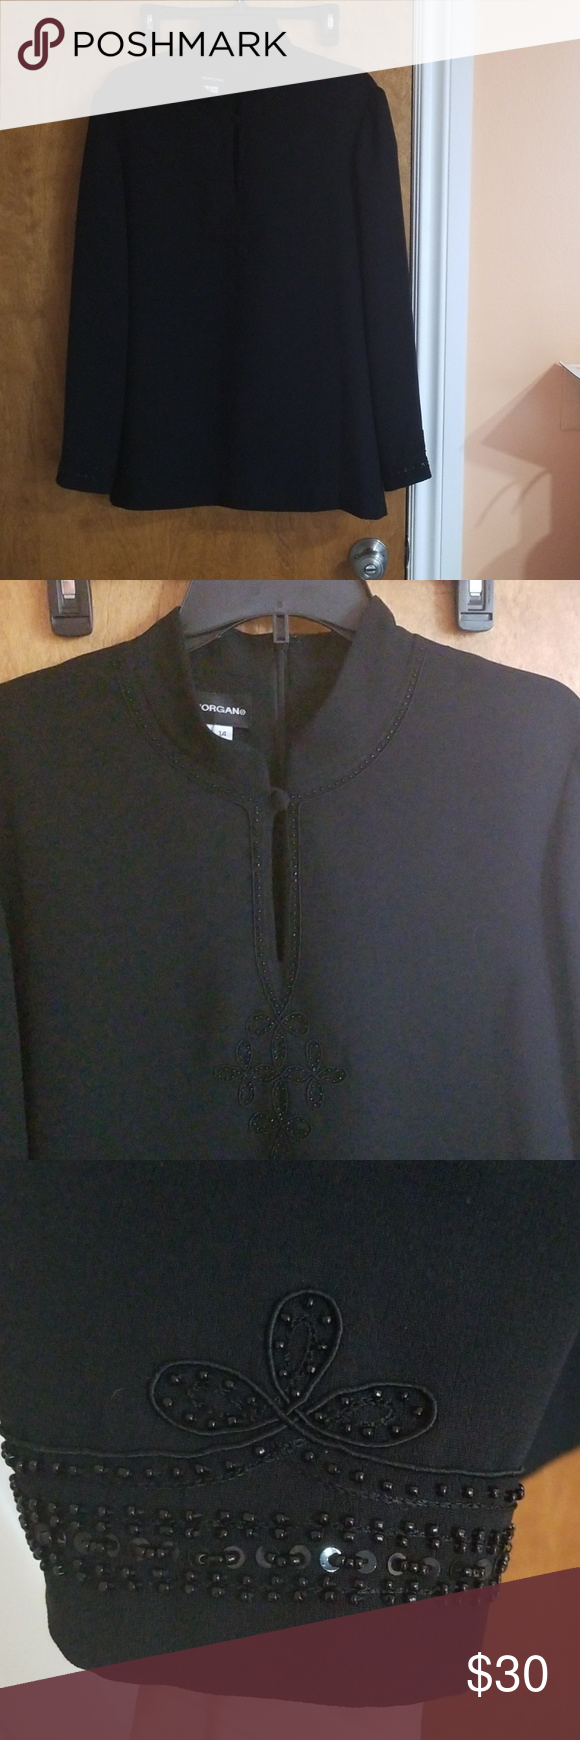 54747a2bb7 🆕️Donna Morgan Blouse Donna Morgan Blouse Zippered back closure Size  14  Embroidered   neck Front Sleeve ends Black 100% Polyester Gently used Donna  ...